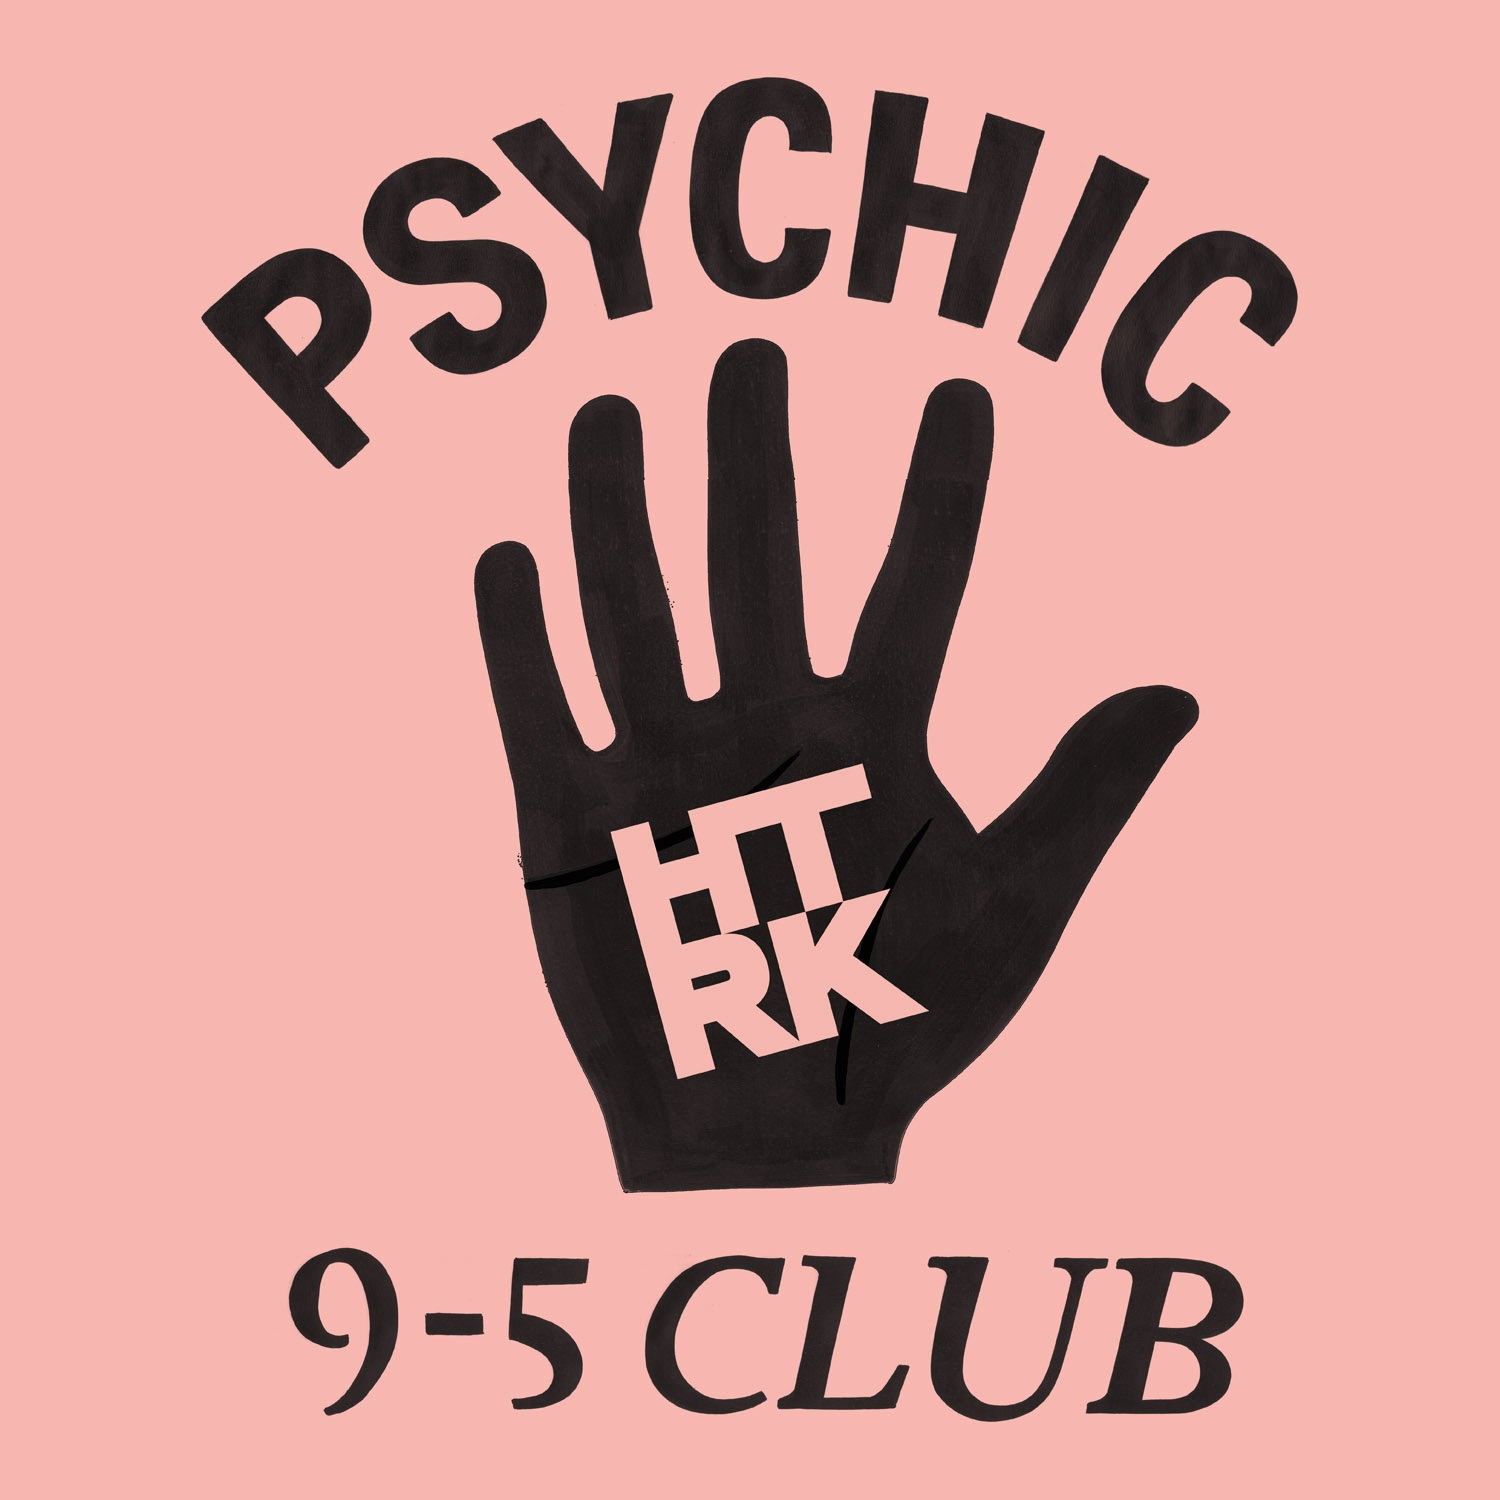 discosafari - HTRK - Psychic 9-5 Club - Ghostly International